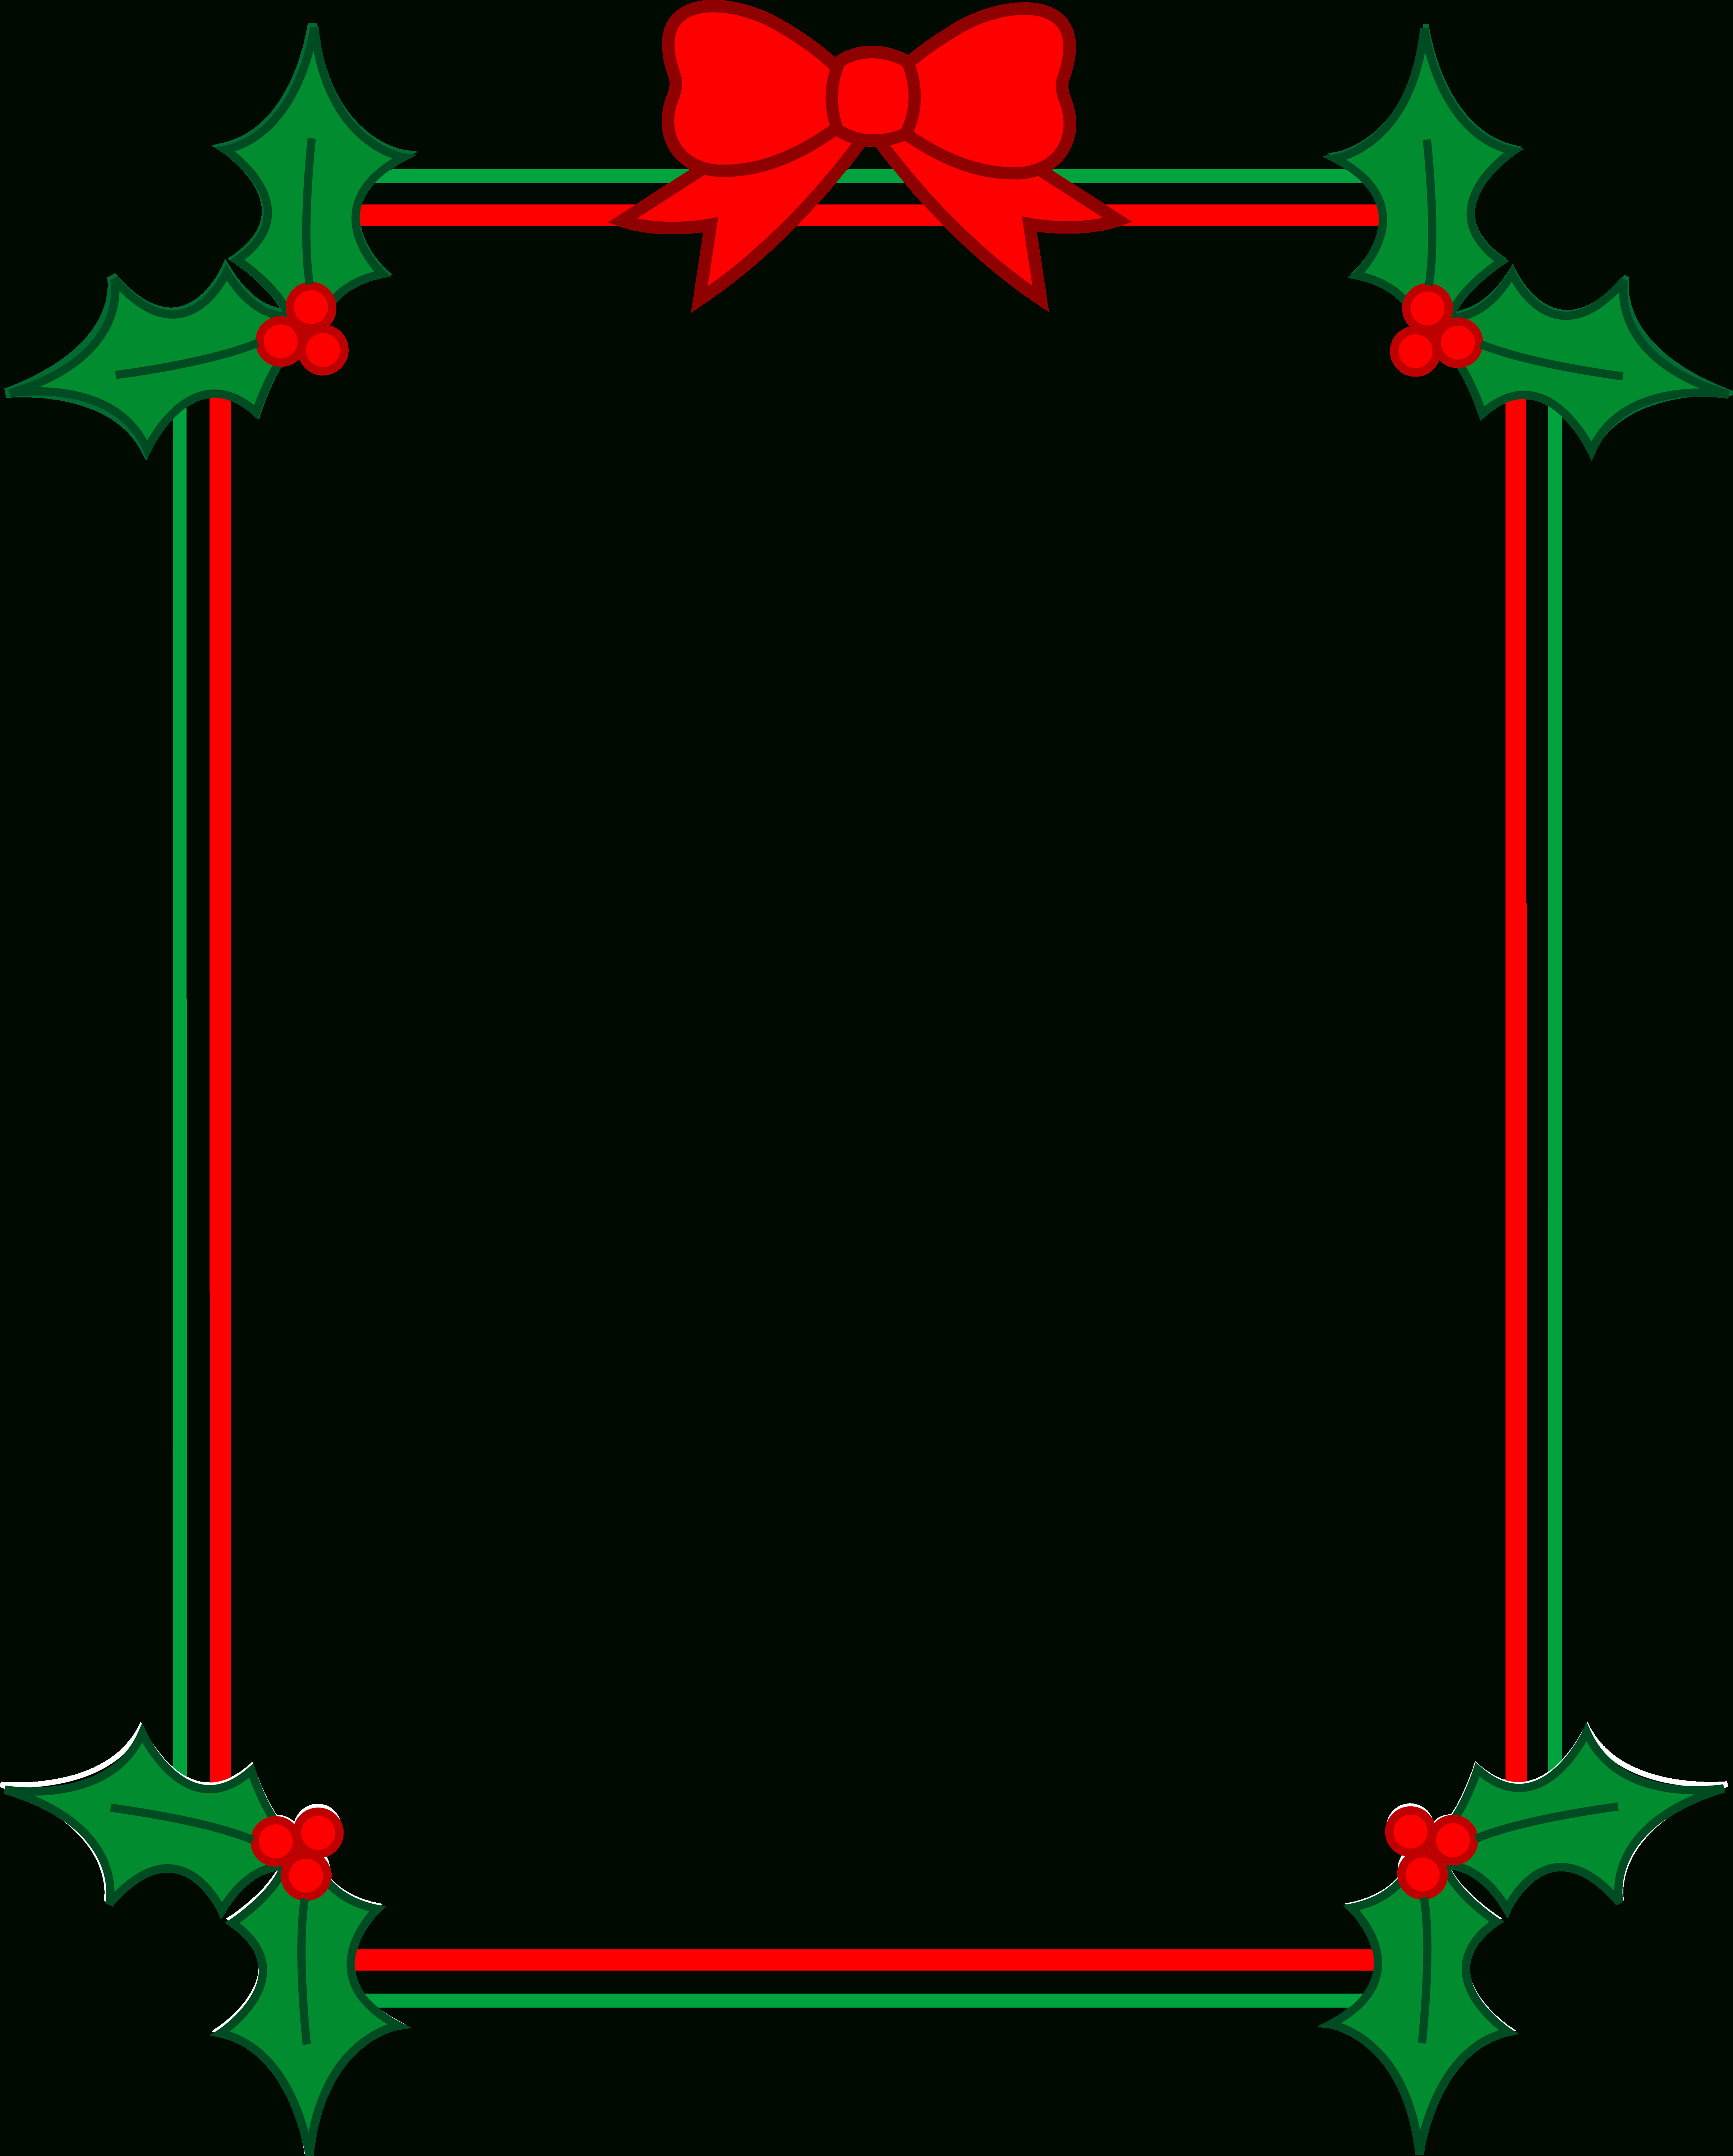 Christmas Clip Art Borders Free Download | Clipart Panda - Free - Free Printable Christmas Frames And Borders